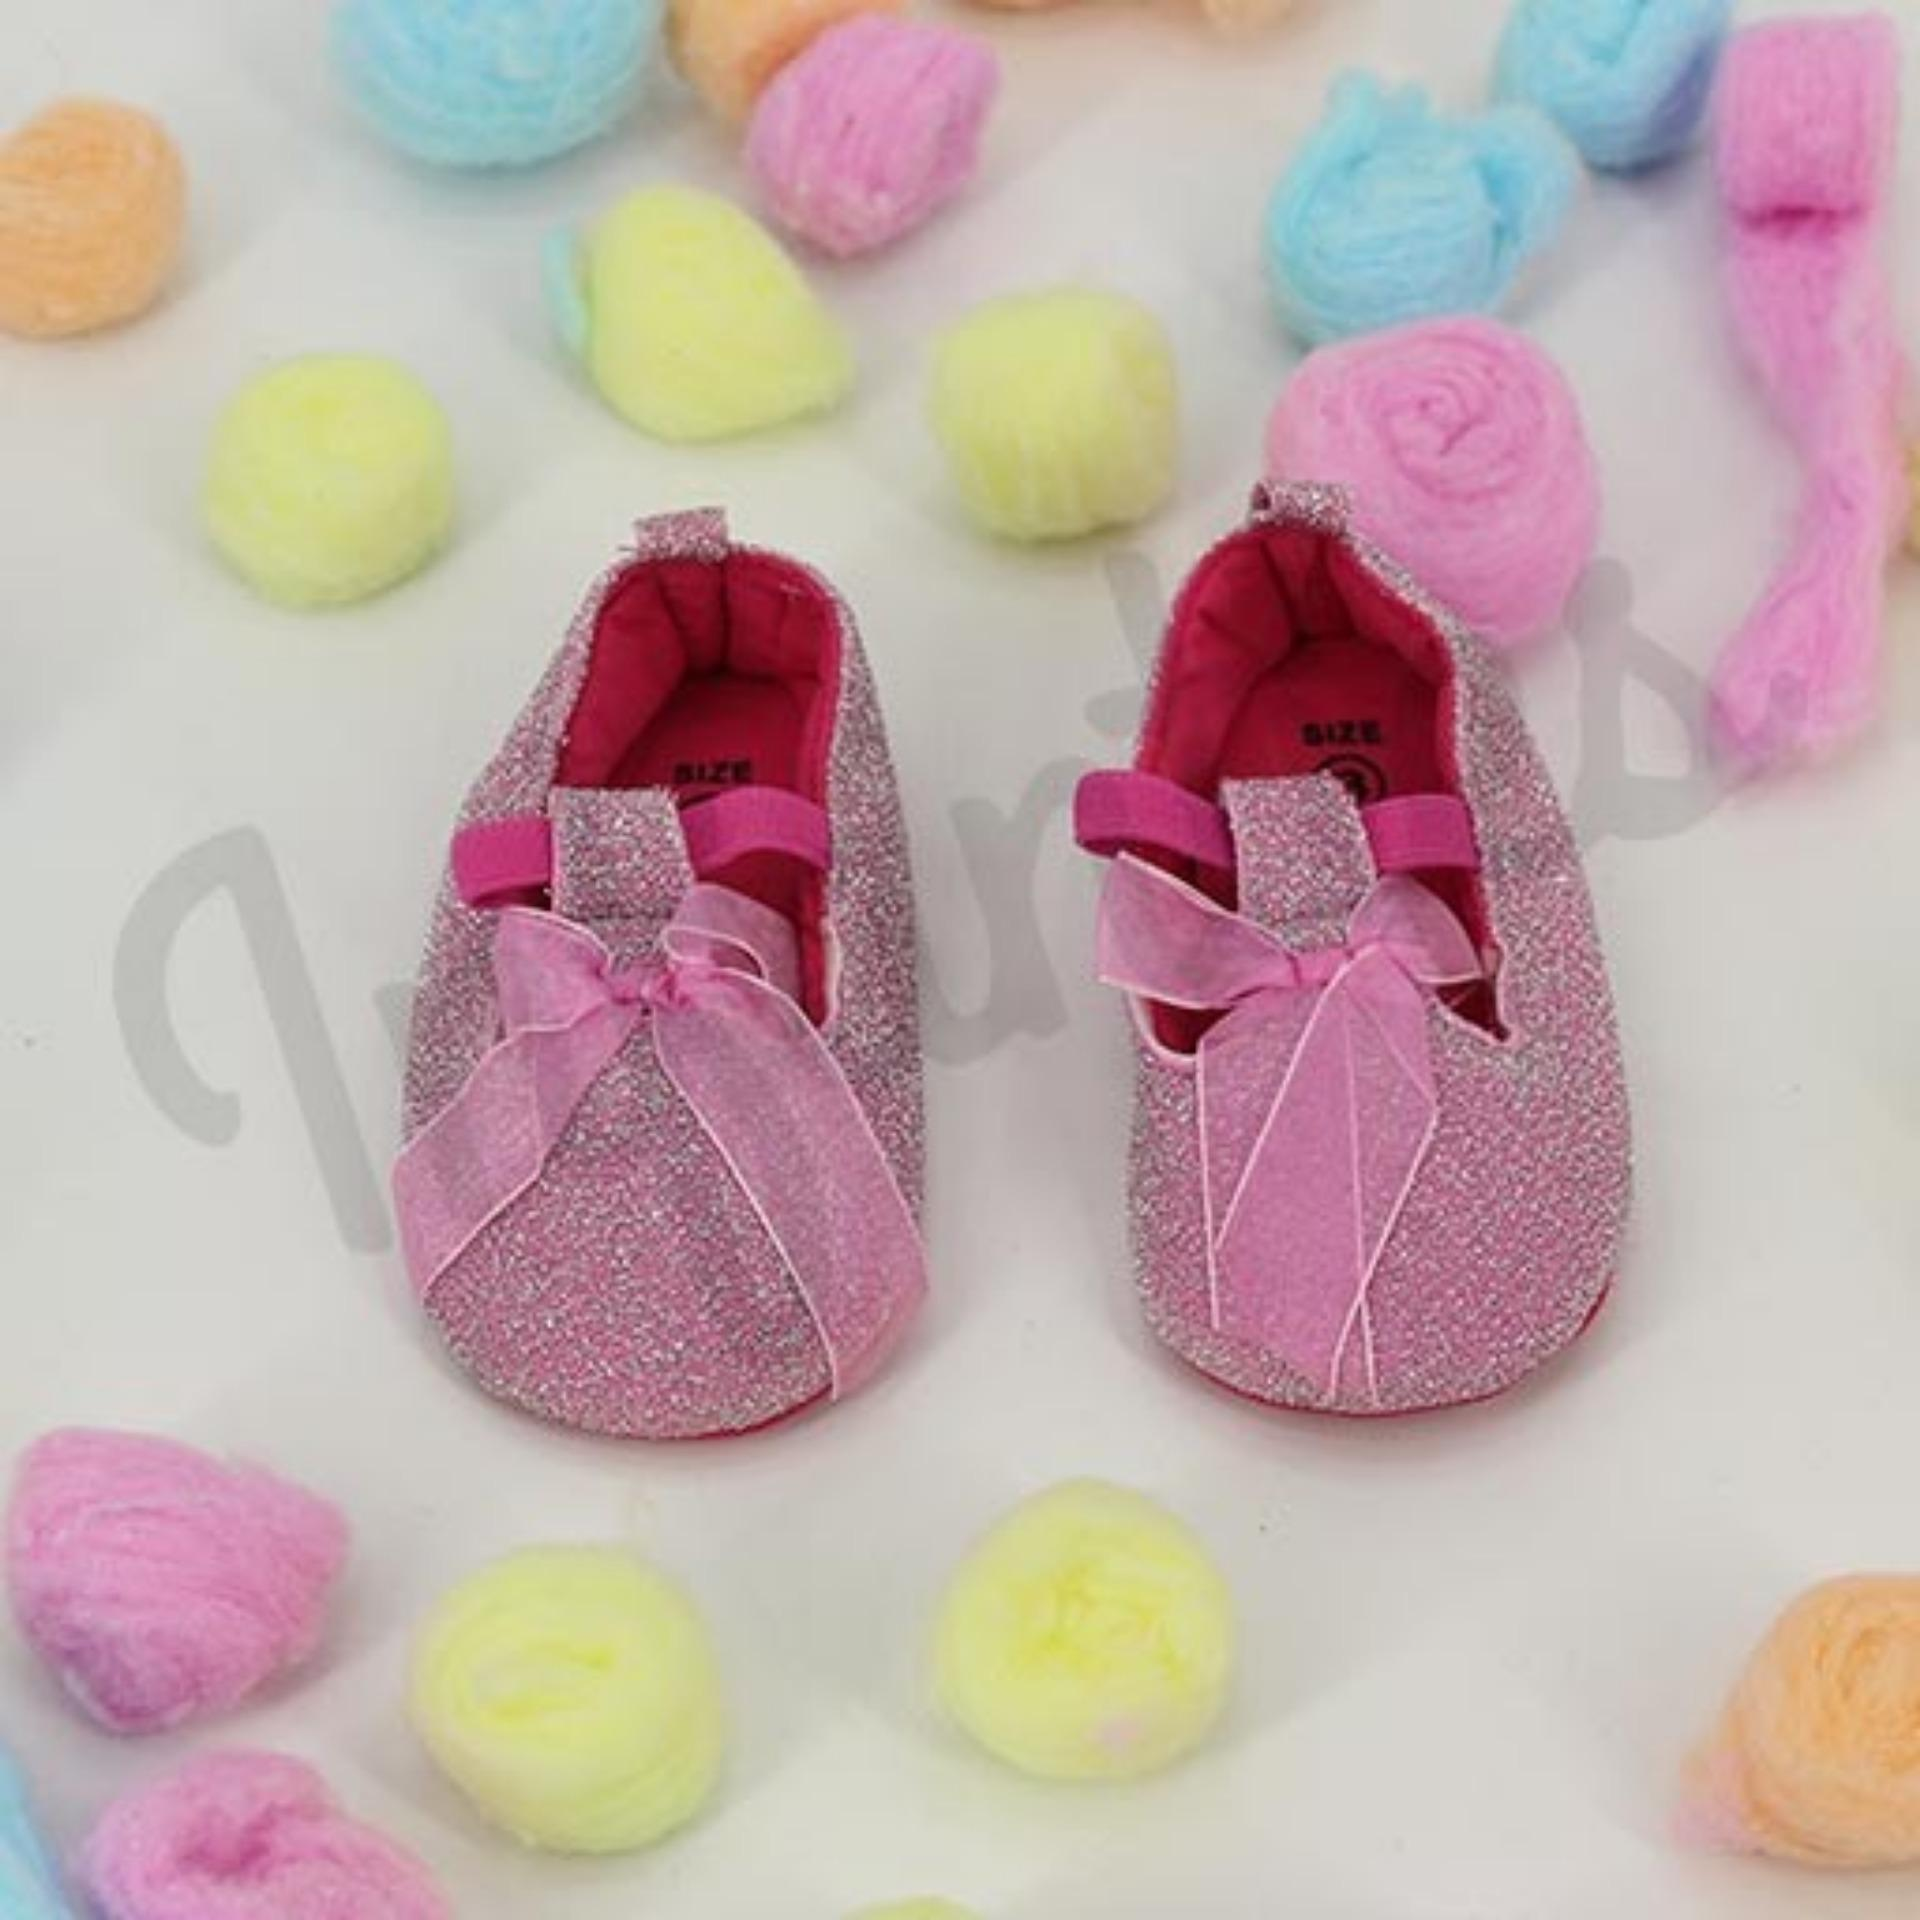 ed83d595b41897 GIRL PUMPY INFANTIES PINKY SHIMMER WITH RIBBON 9191 18195-2 24